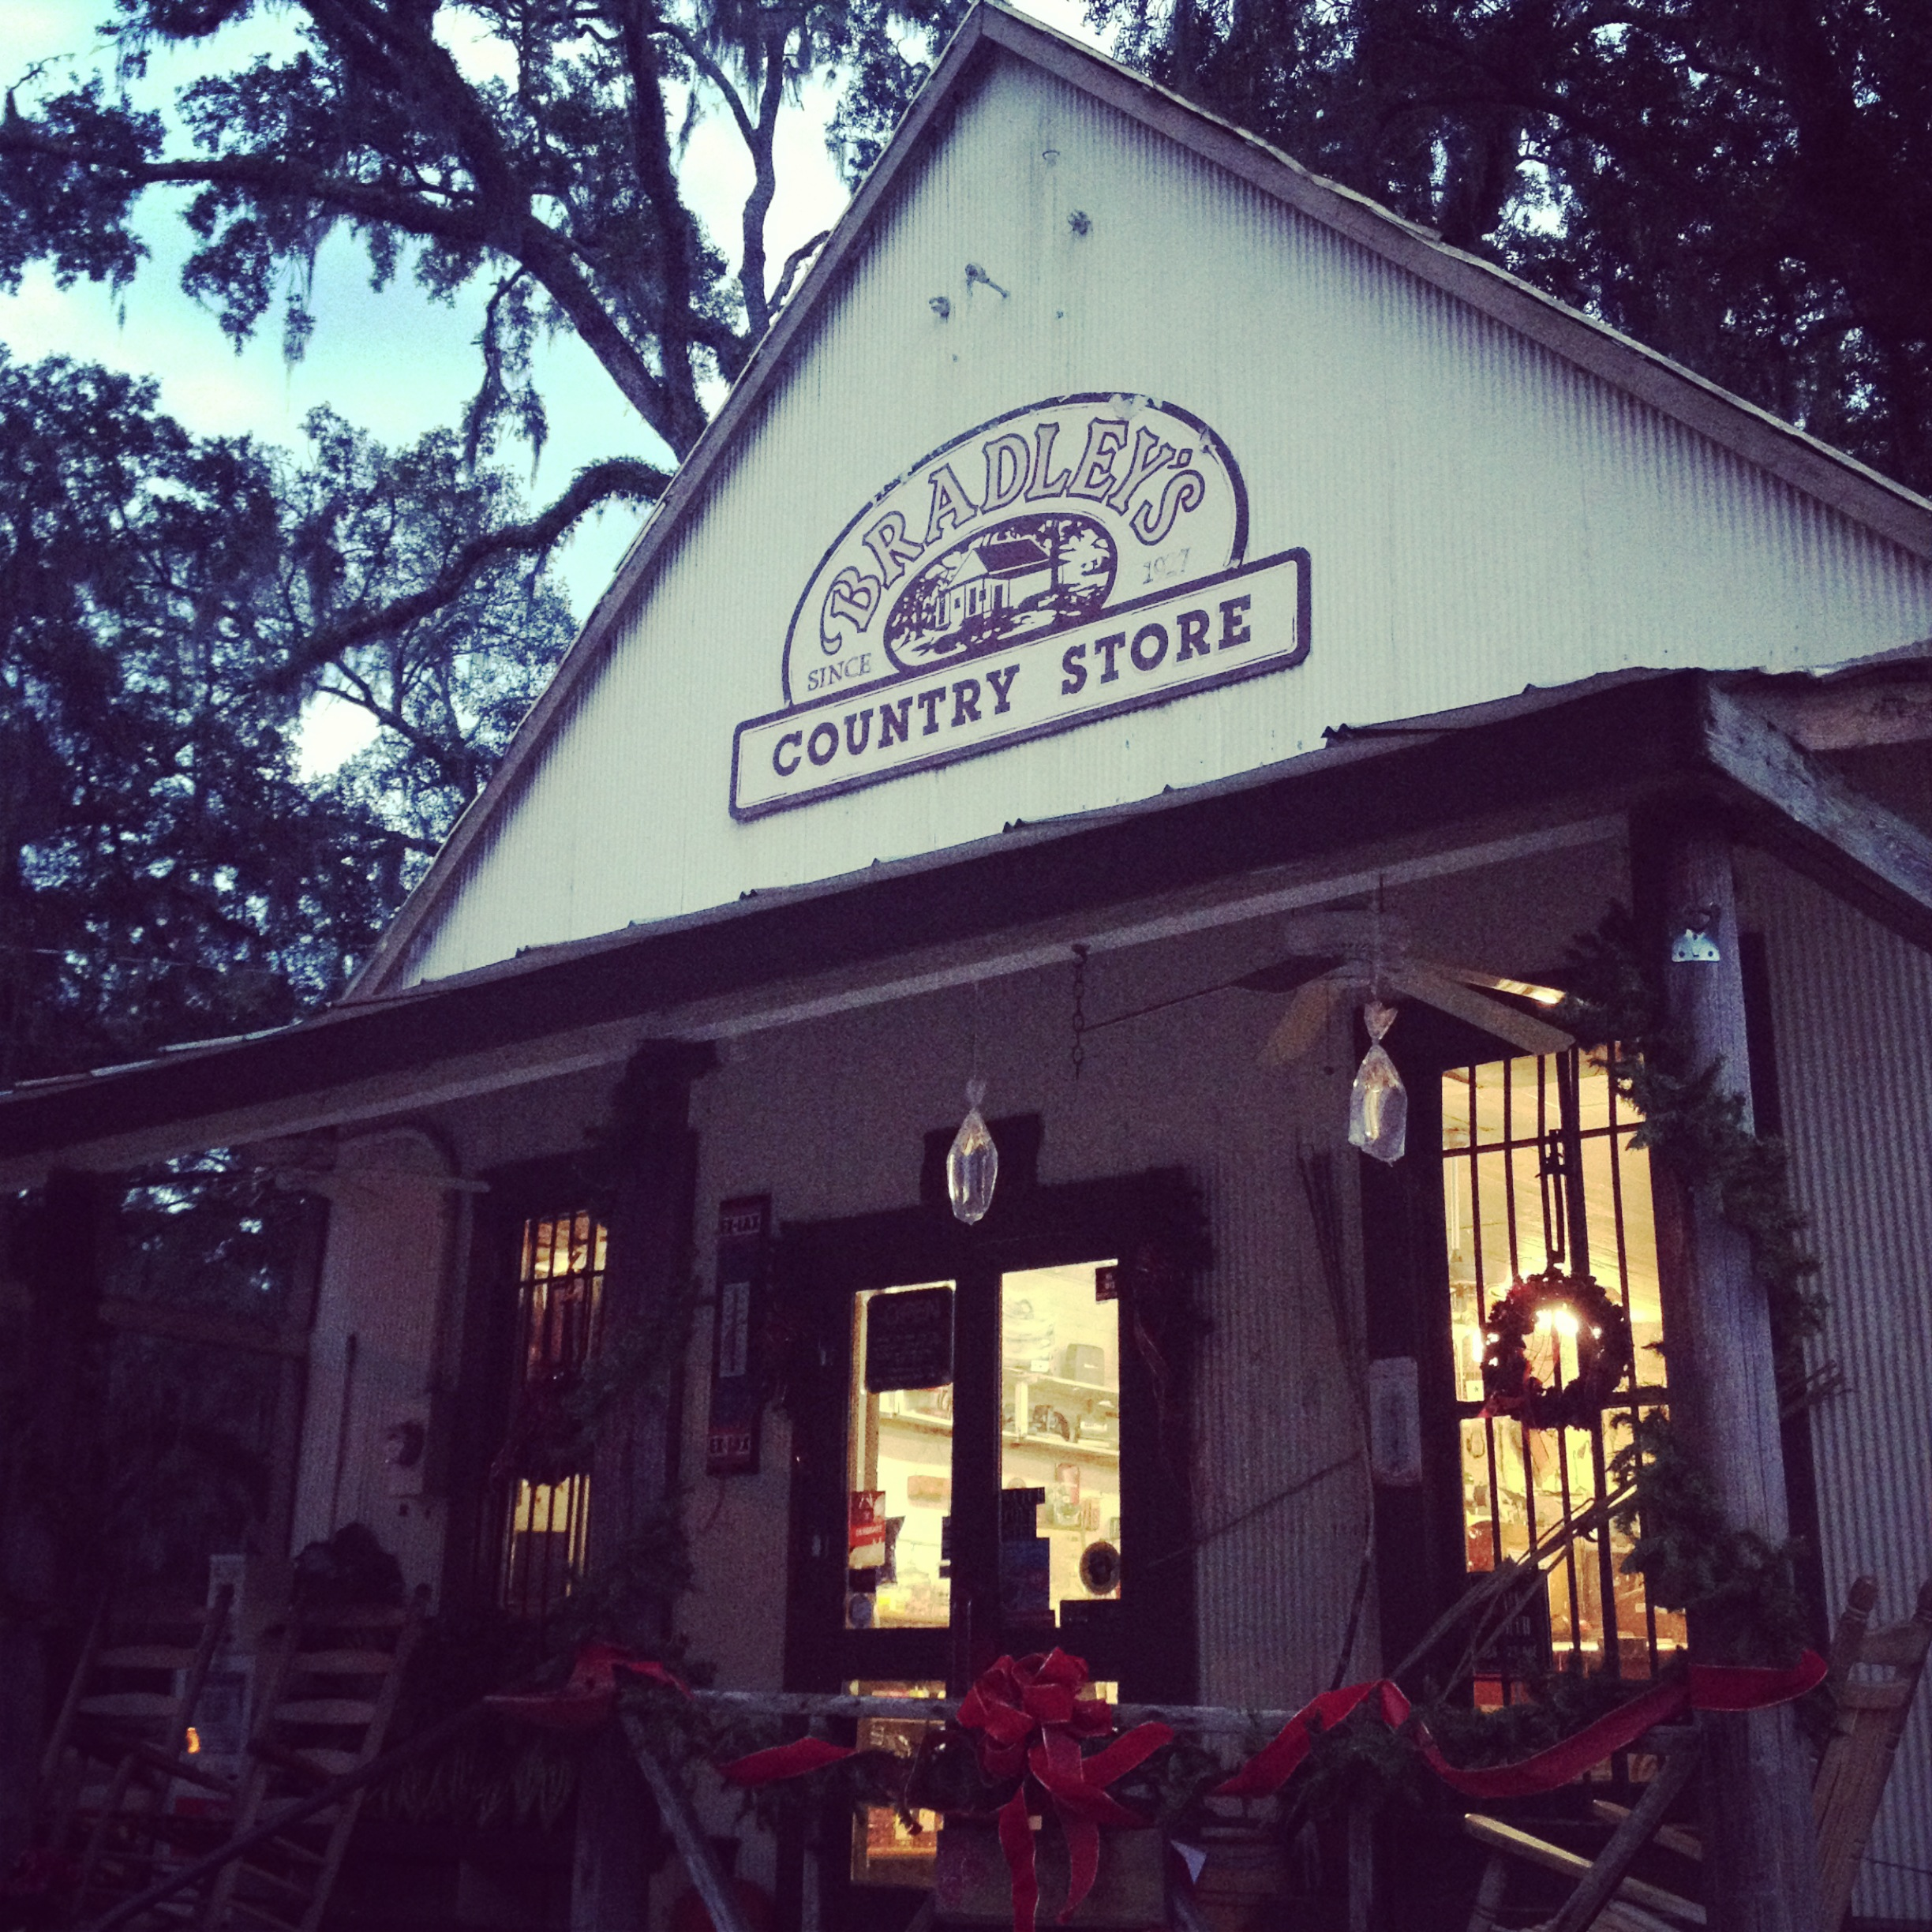 Bradley's Country Store